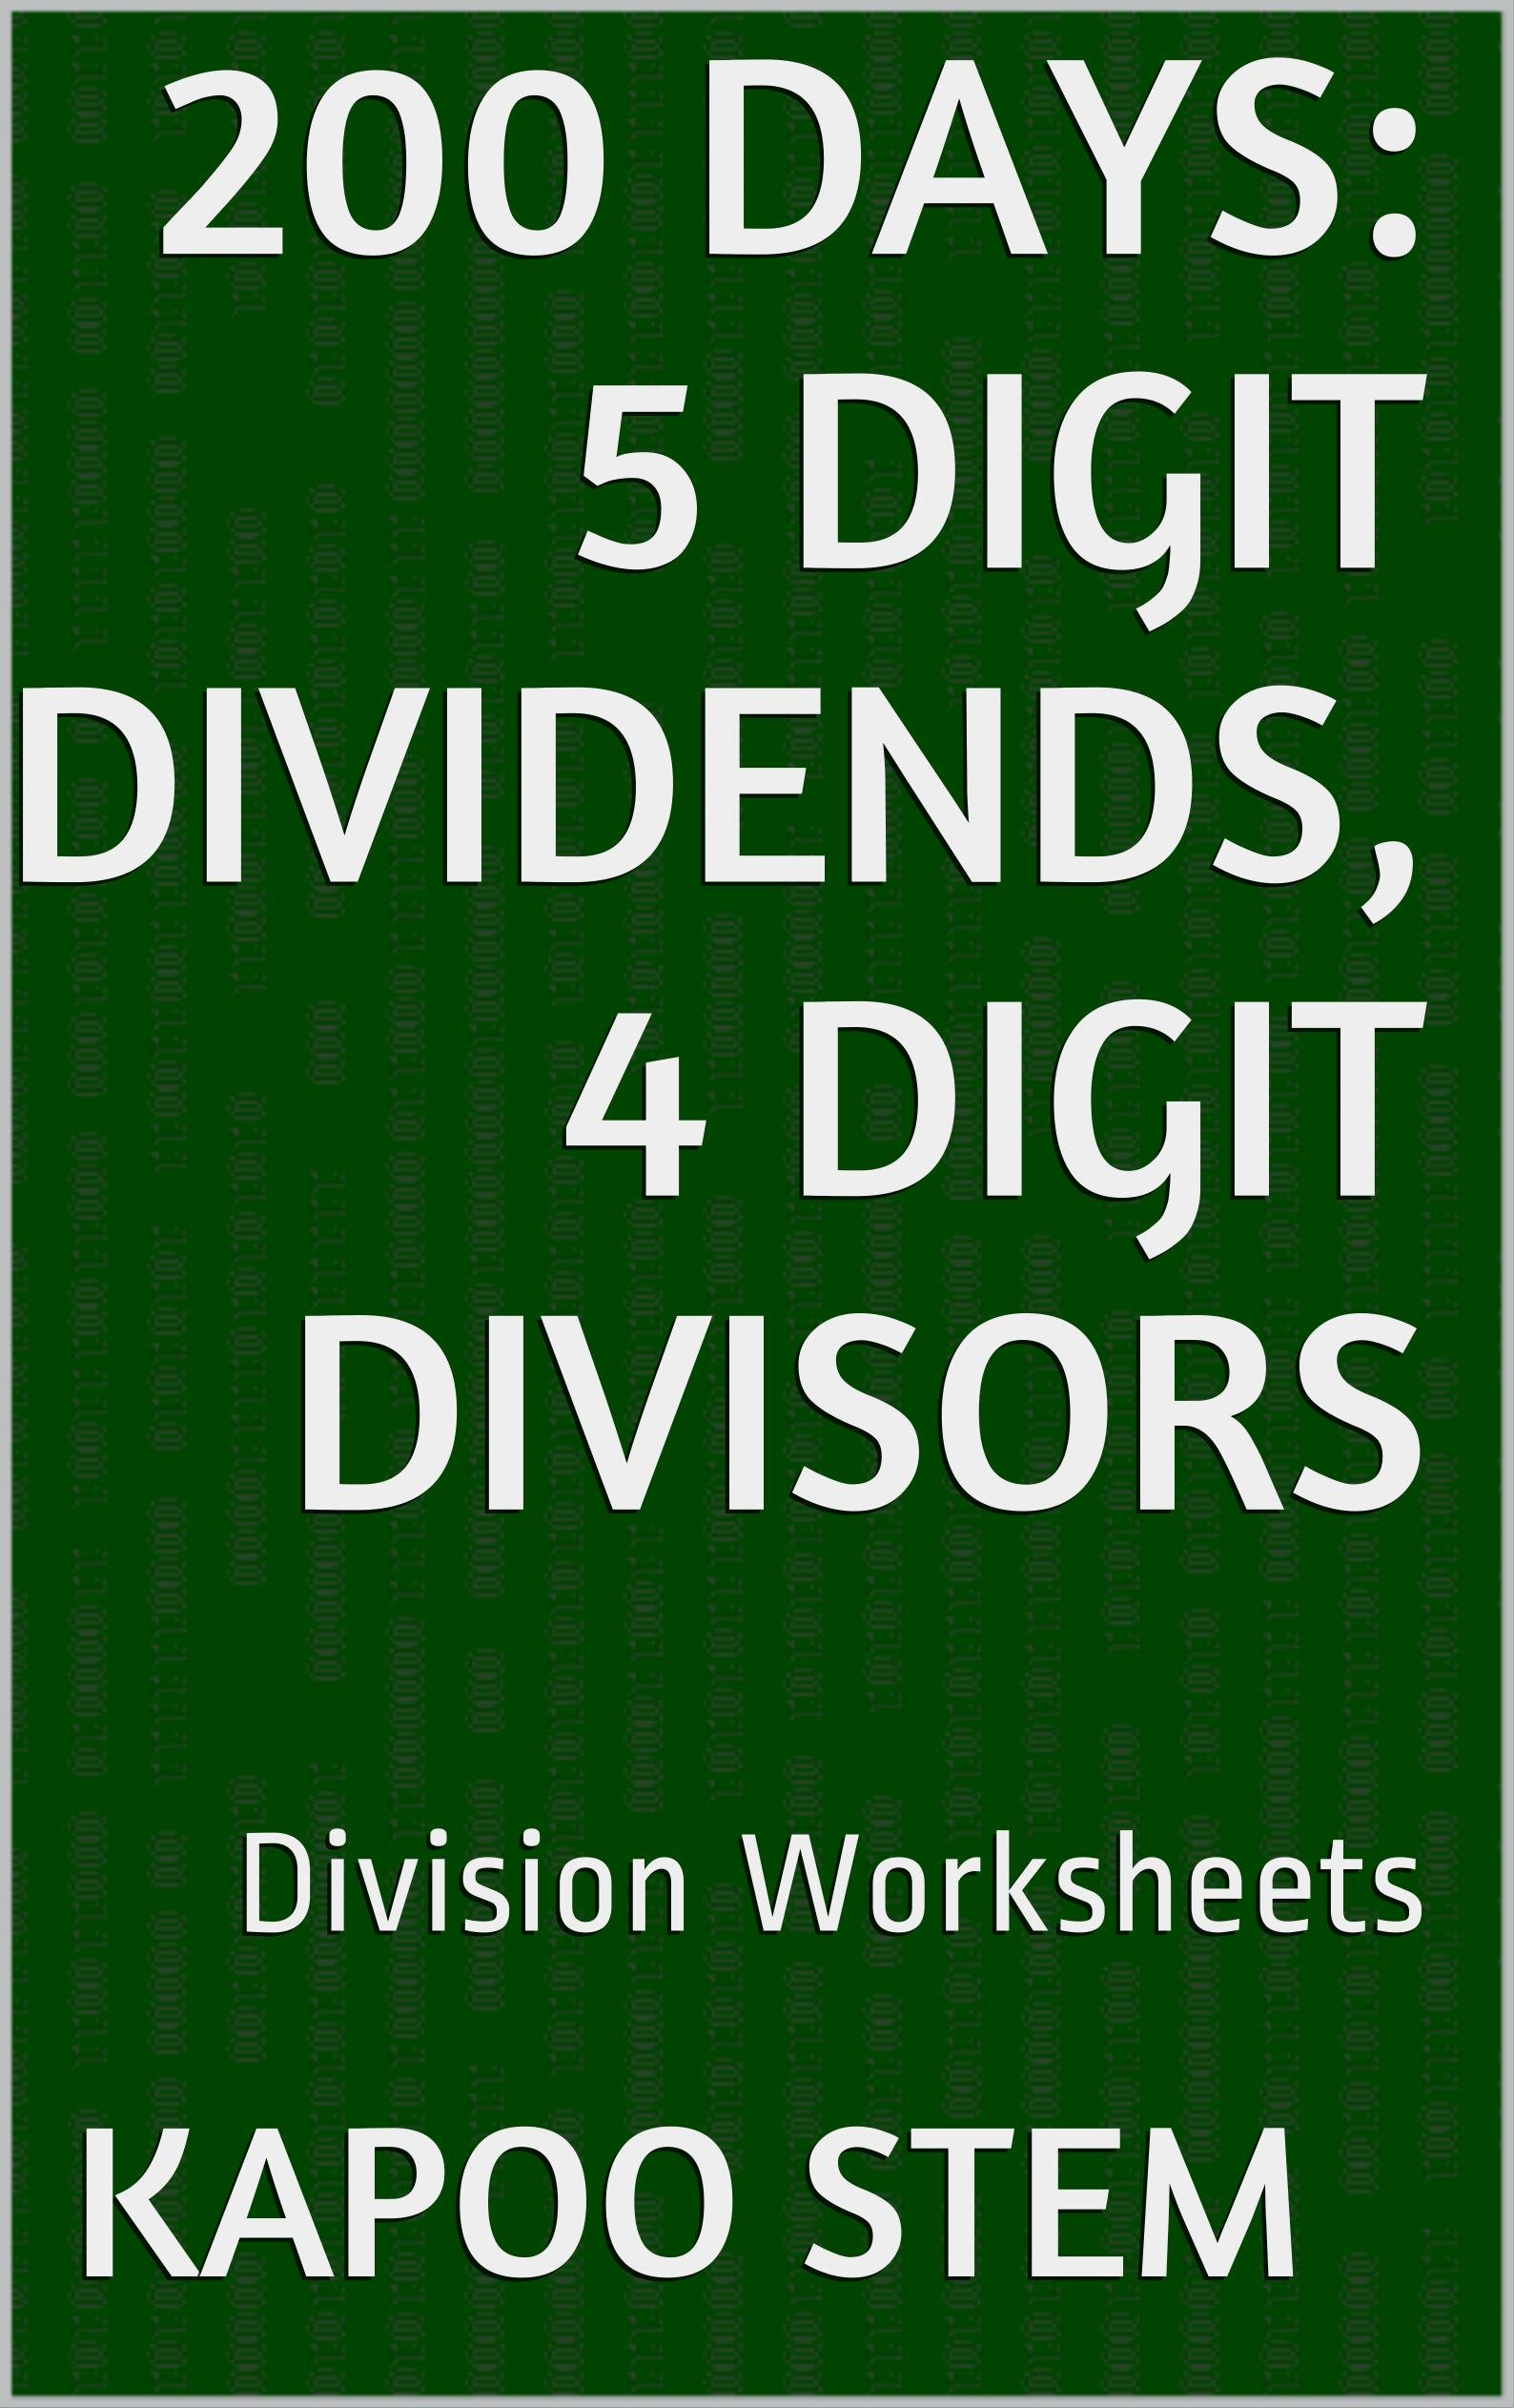 200 Division Worksheets With 5 Digit Dividends 4 Digit